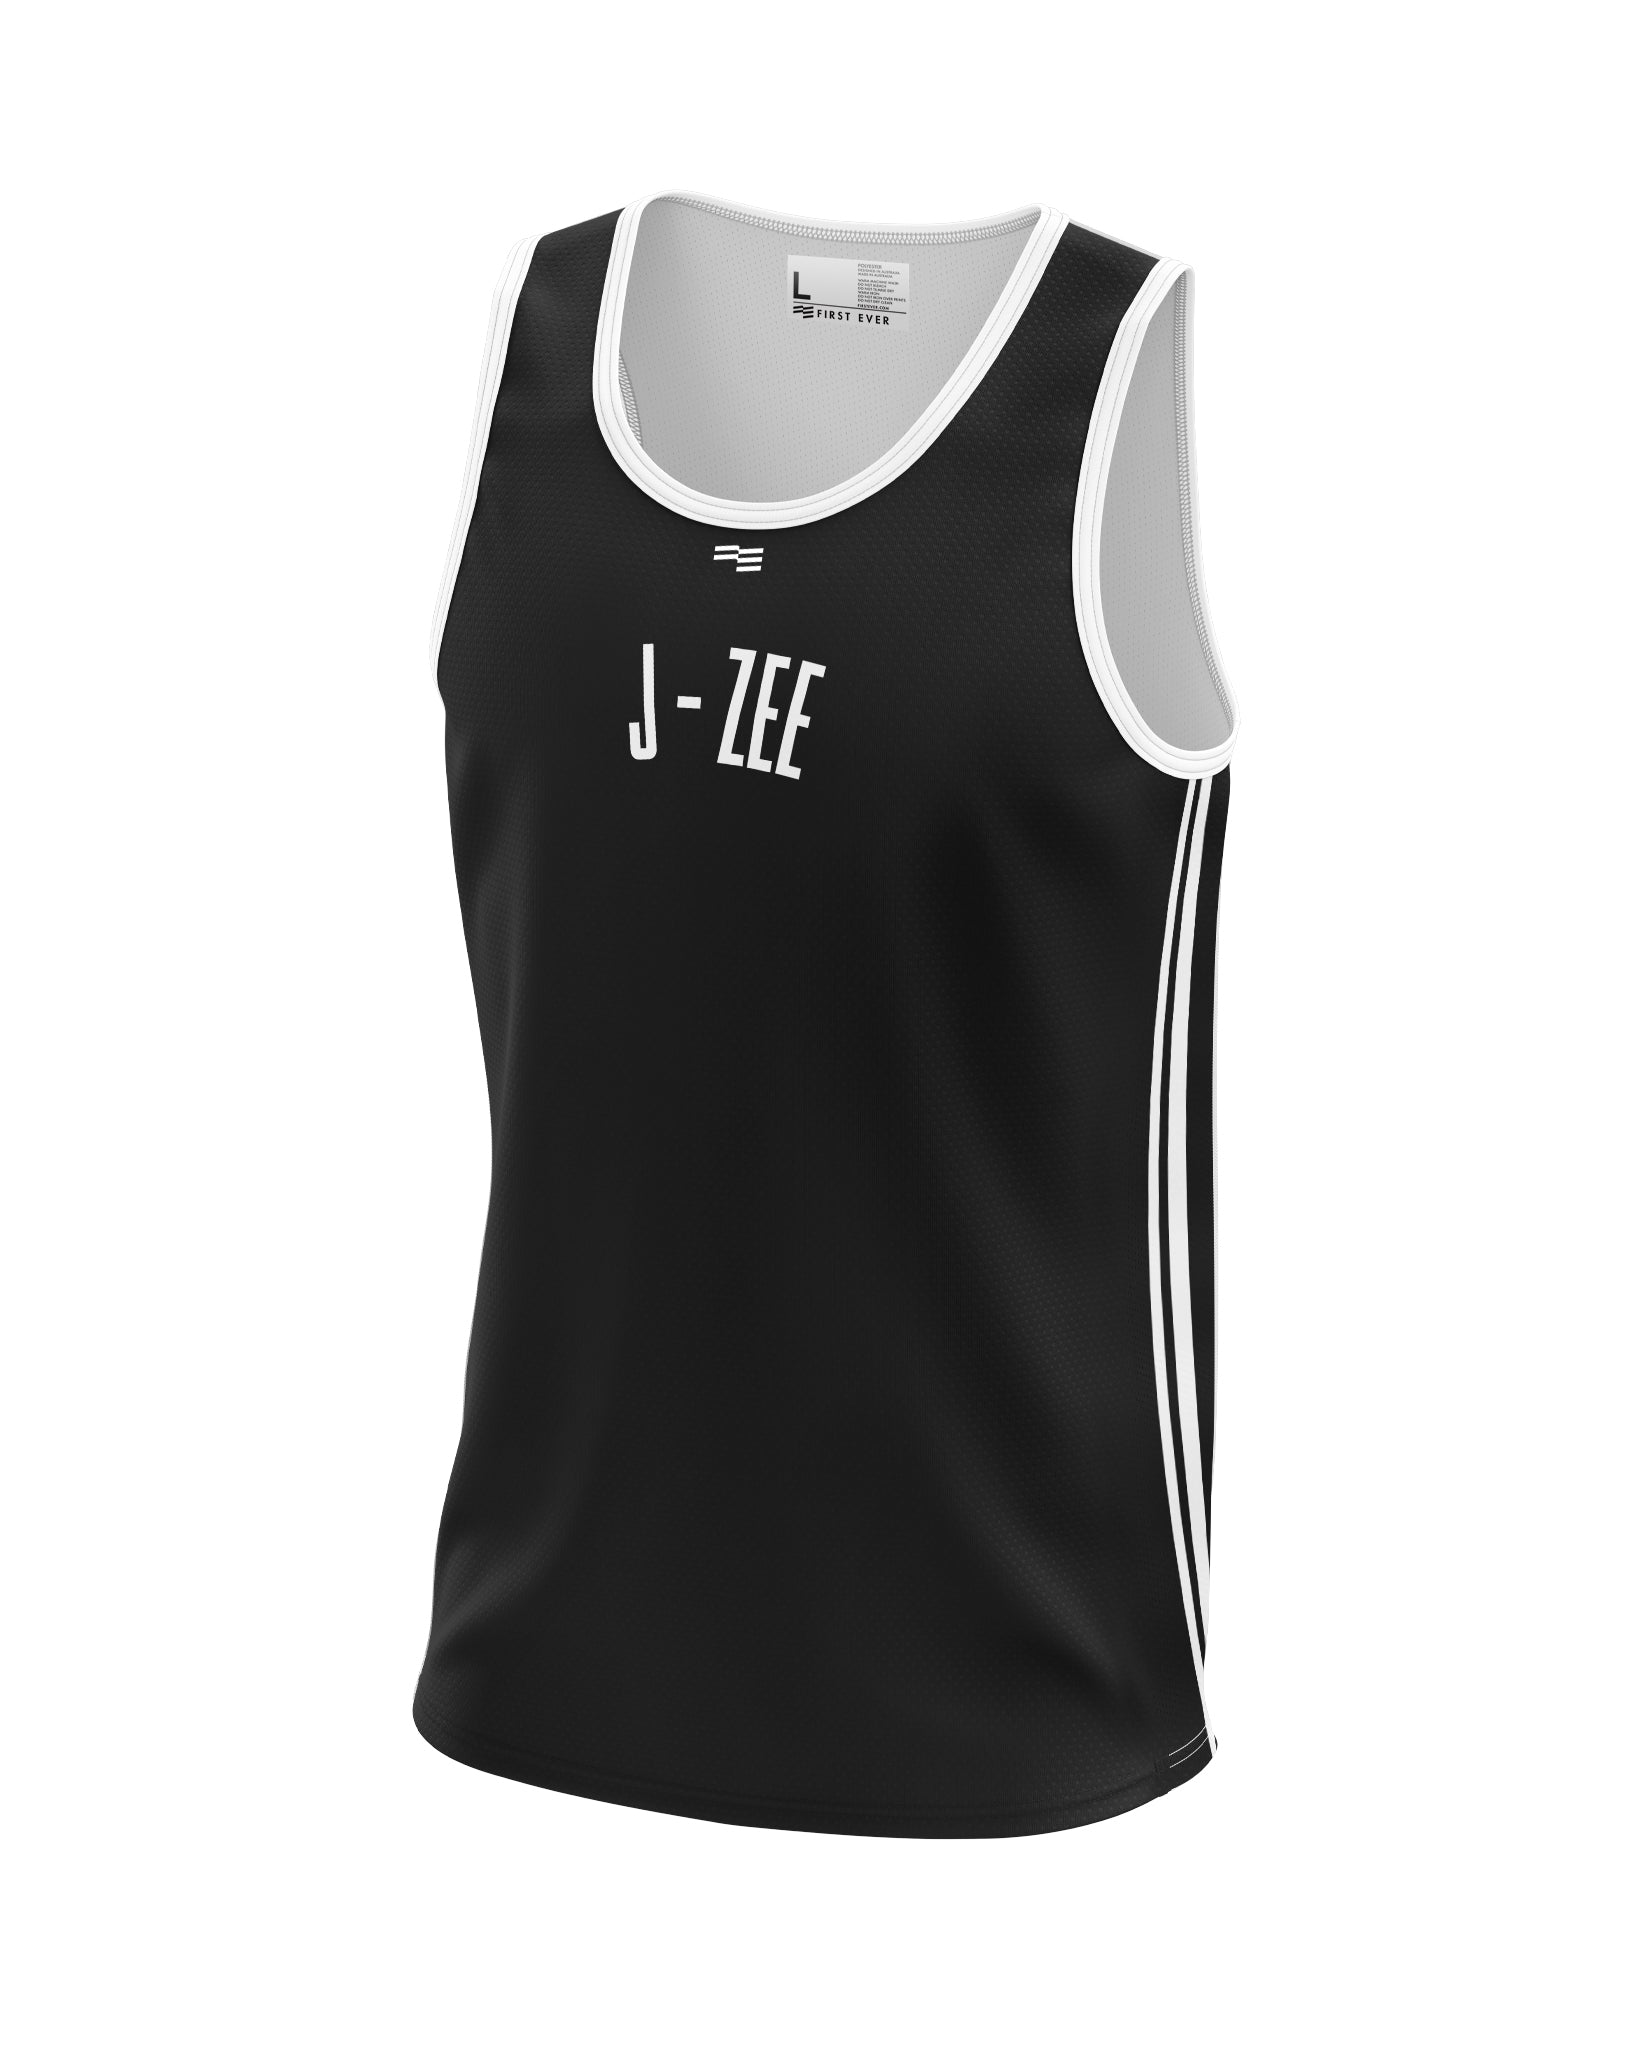 J Zee Training Singlet - Mens